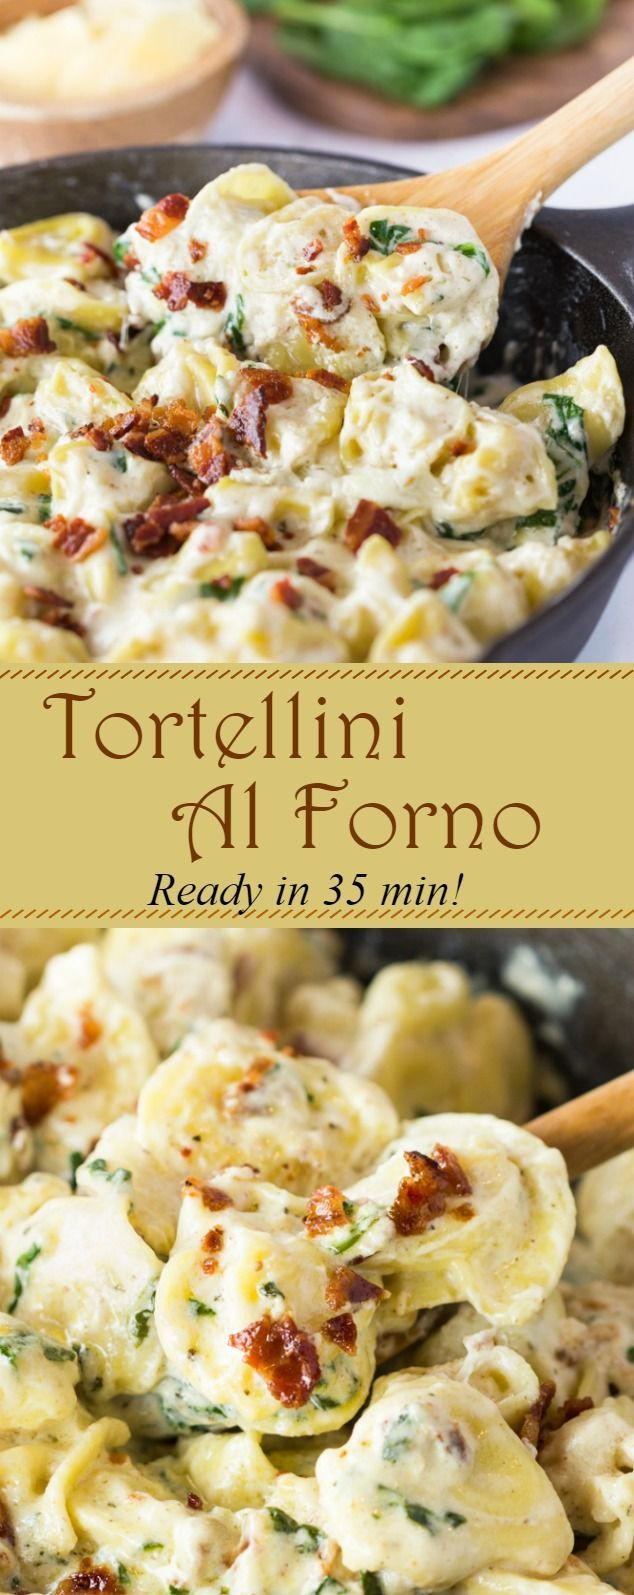 Photo of Tortellini Al Forno